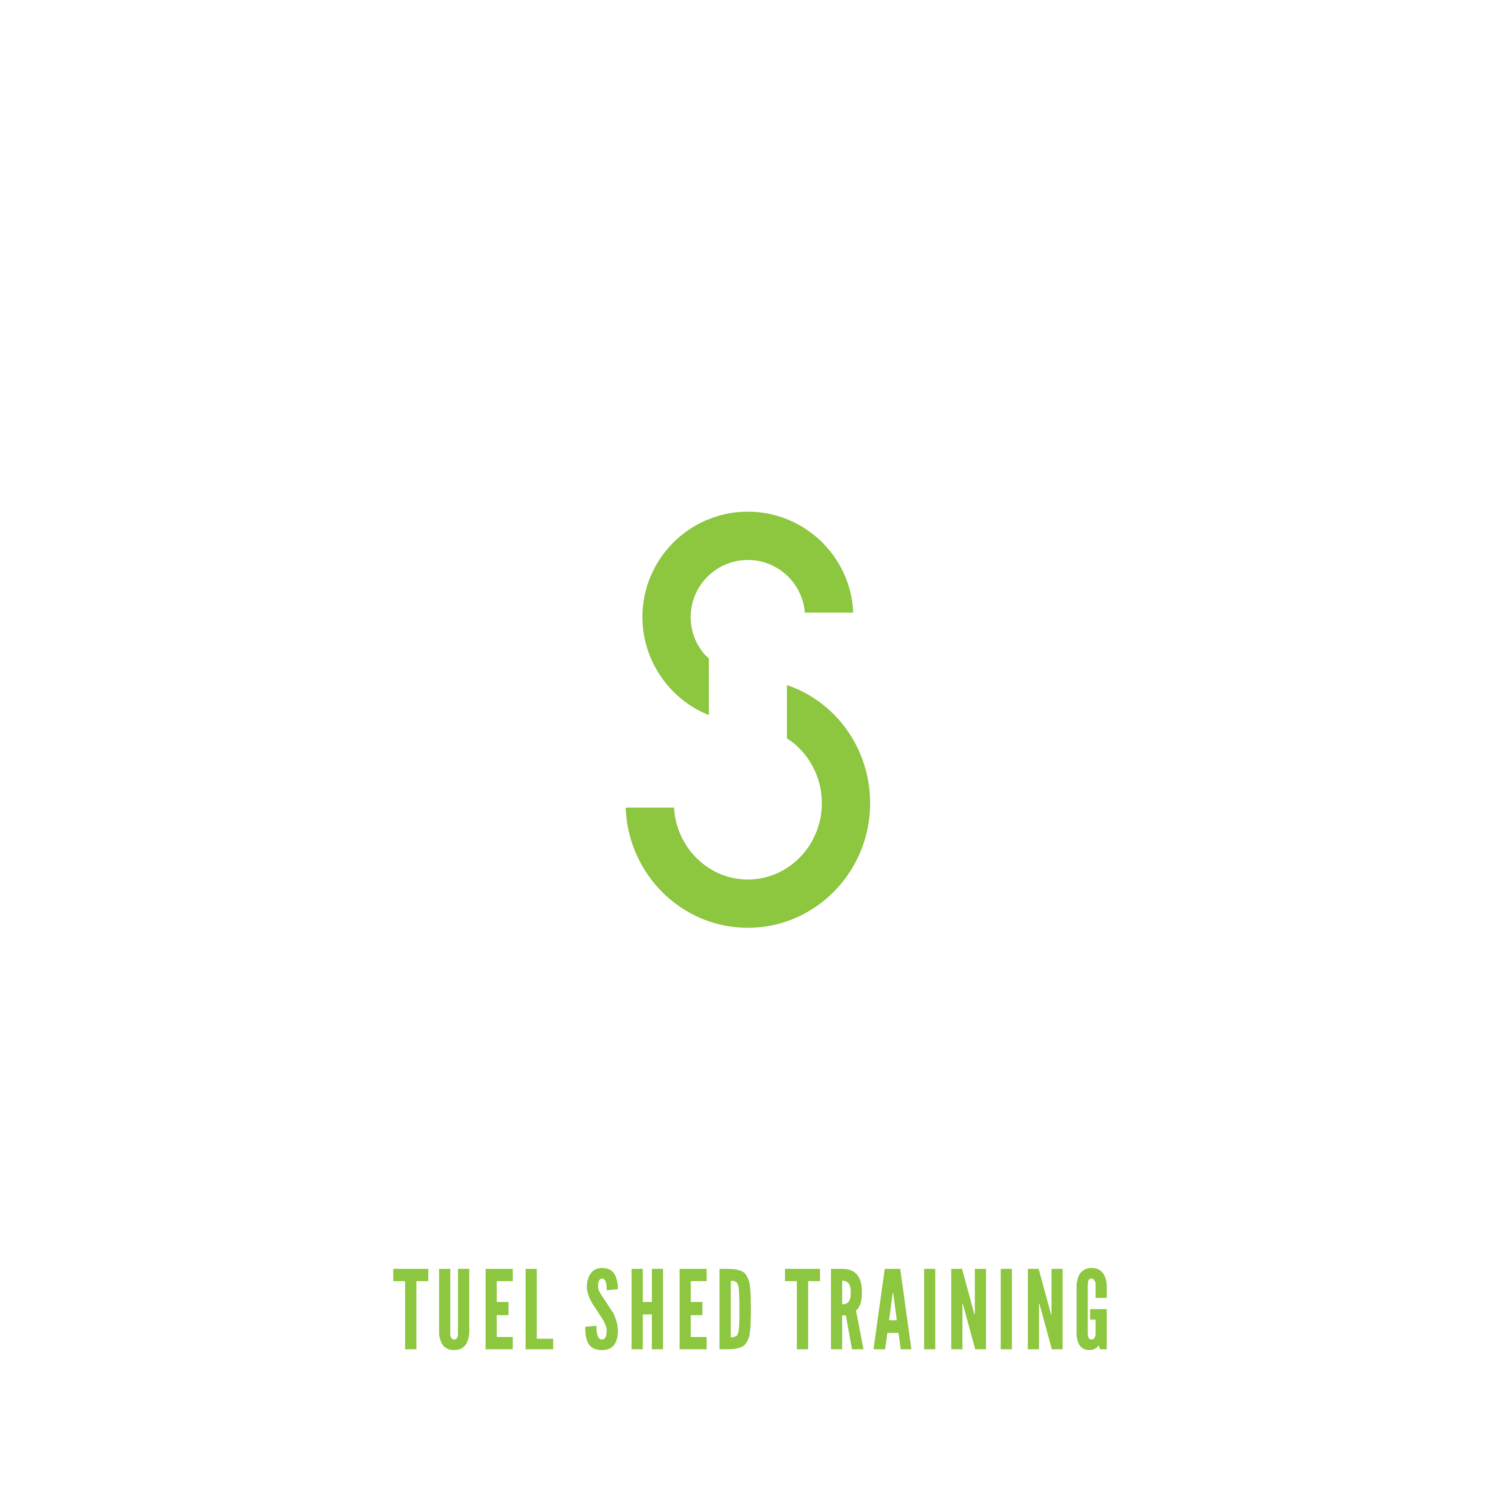 Personal trainers tuel shed training tuel shed training xflitez Image collections